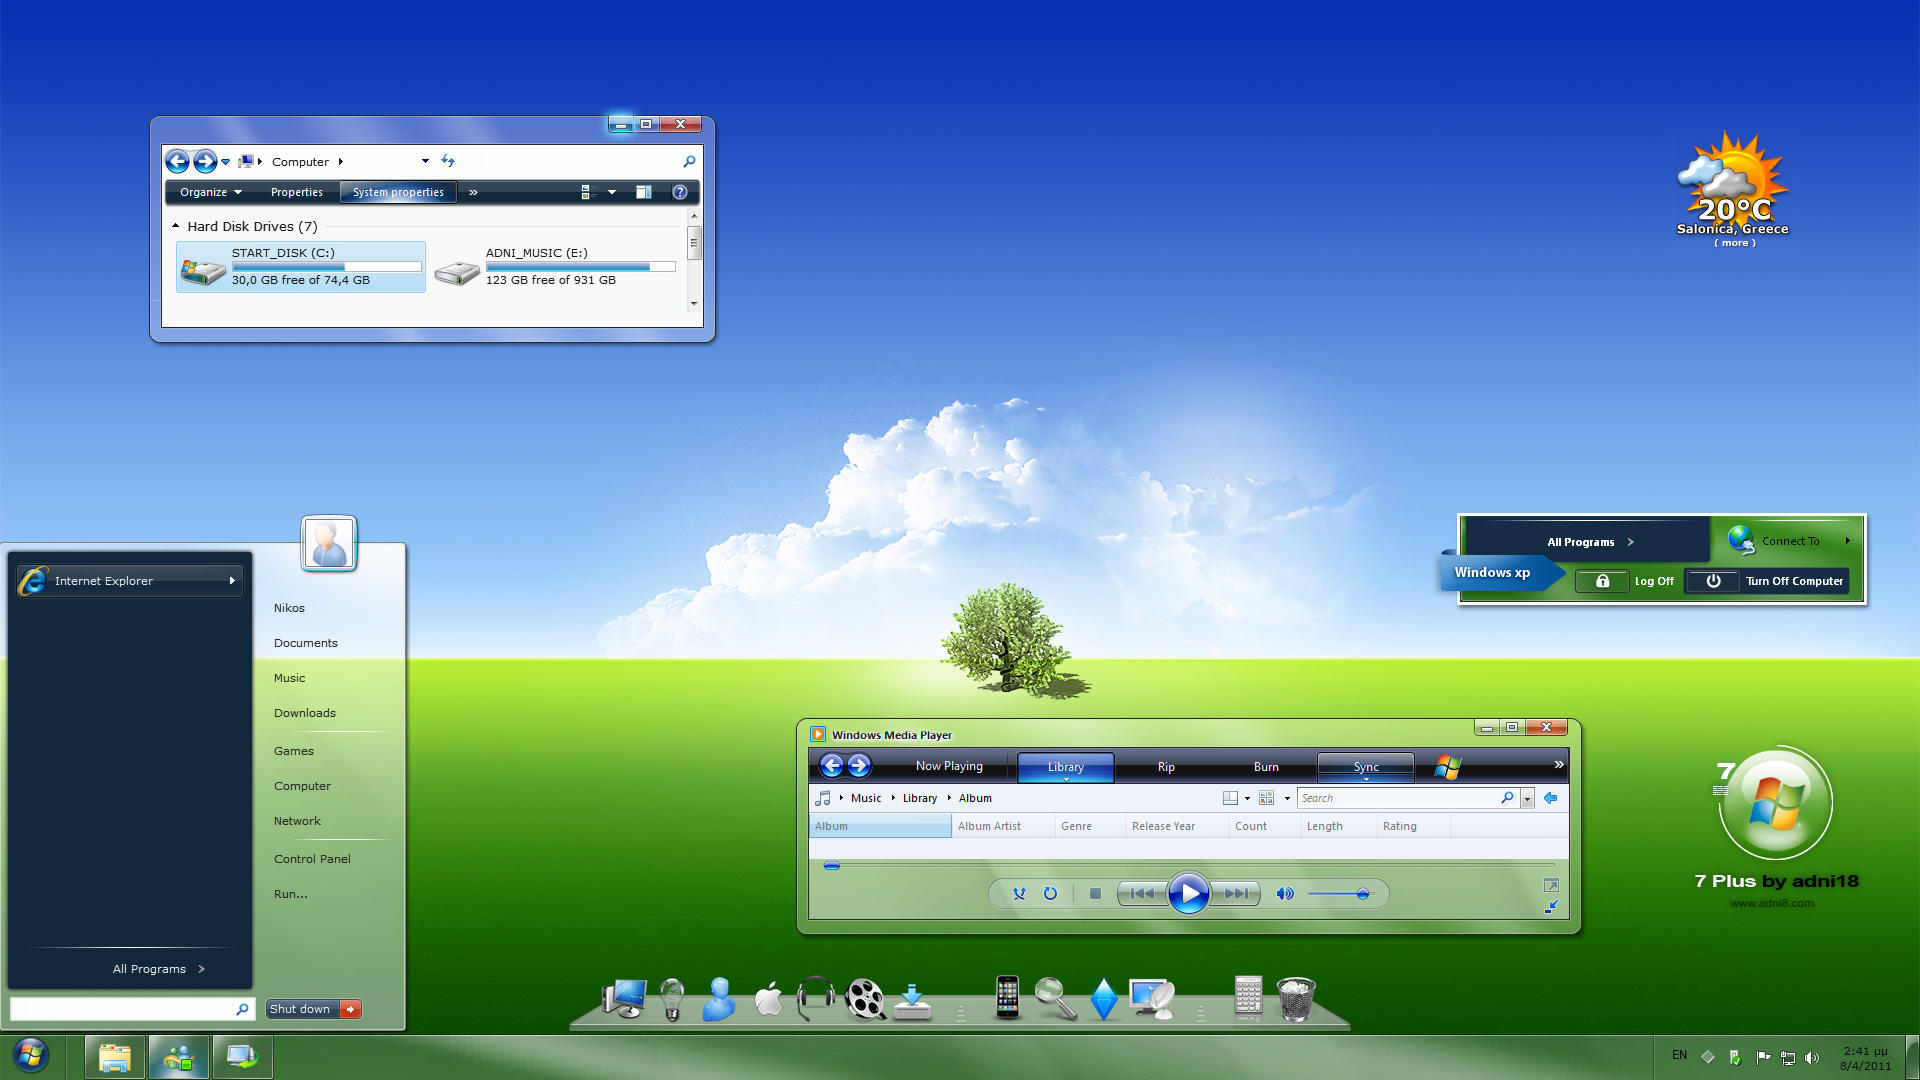 Windows 7 Ultimate Startup Error due to bad patch will not